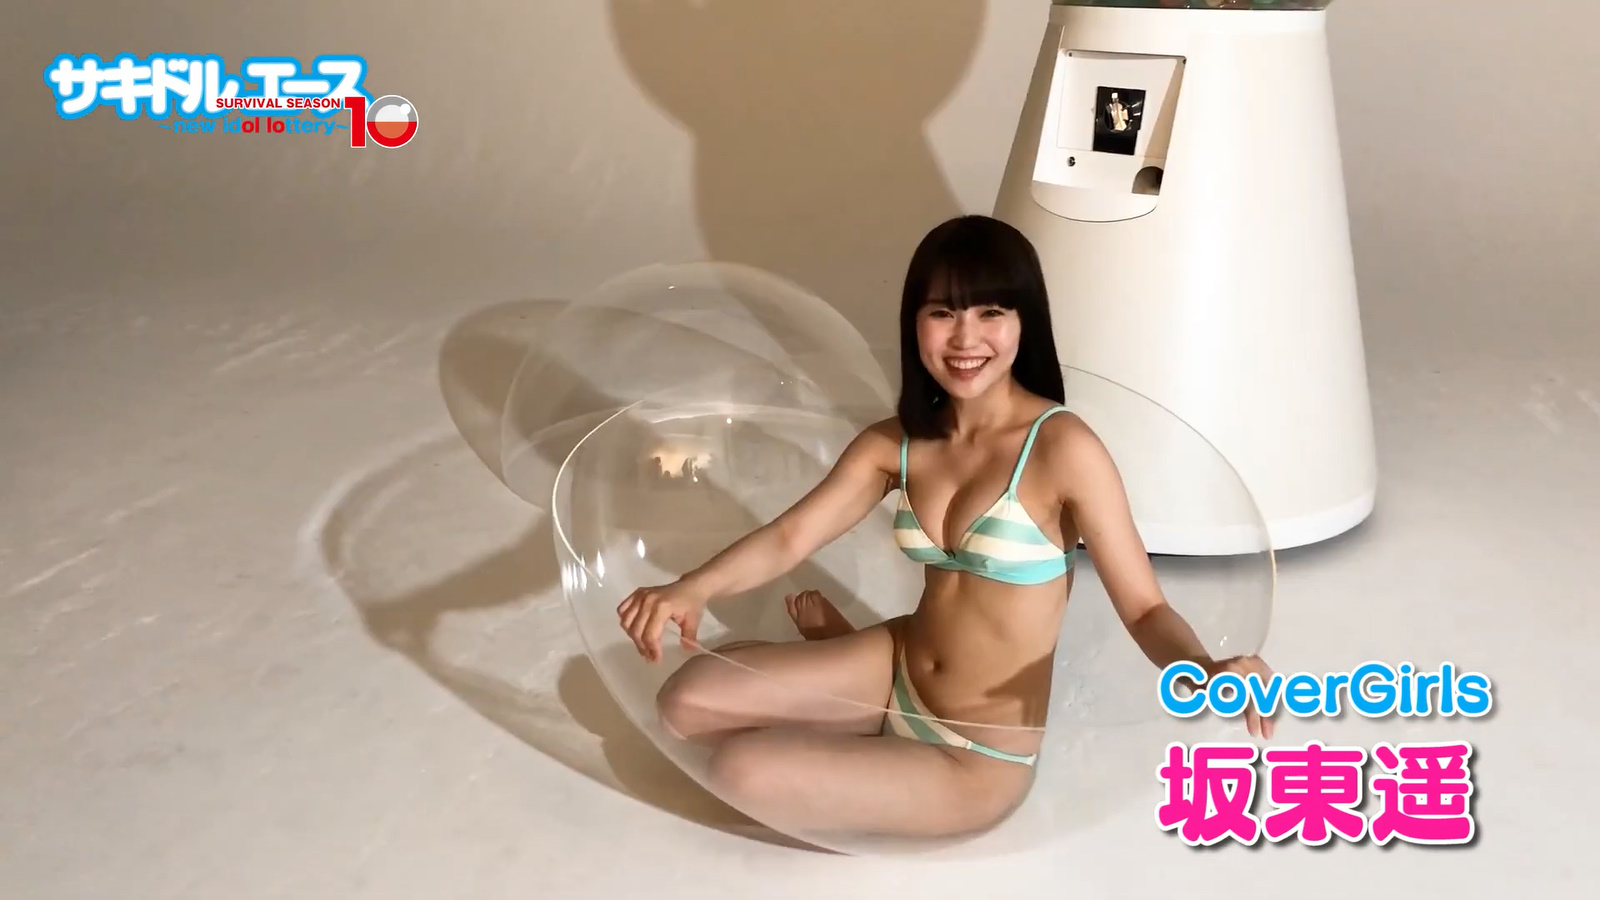 Sakidol Ace 10 Introduction Movie Capture of Swimsuit100